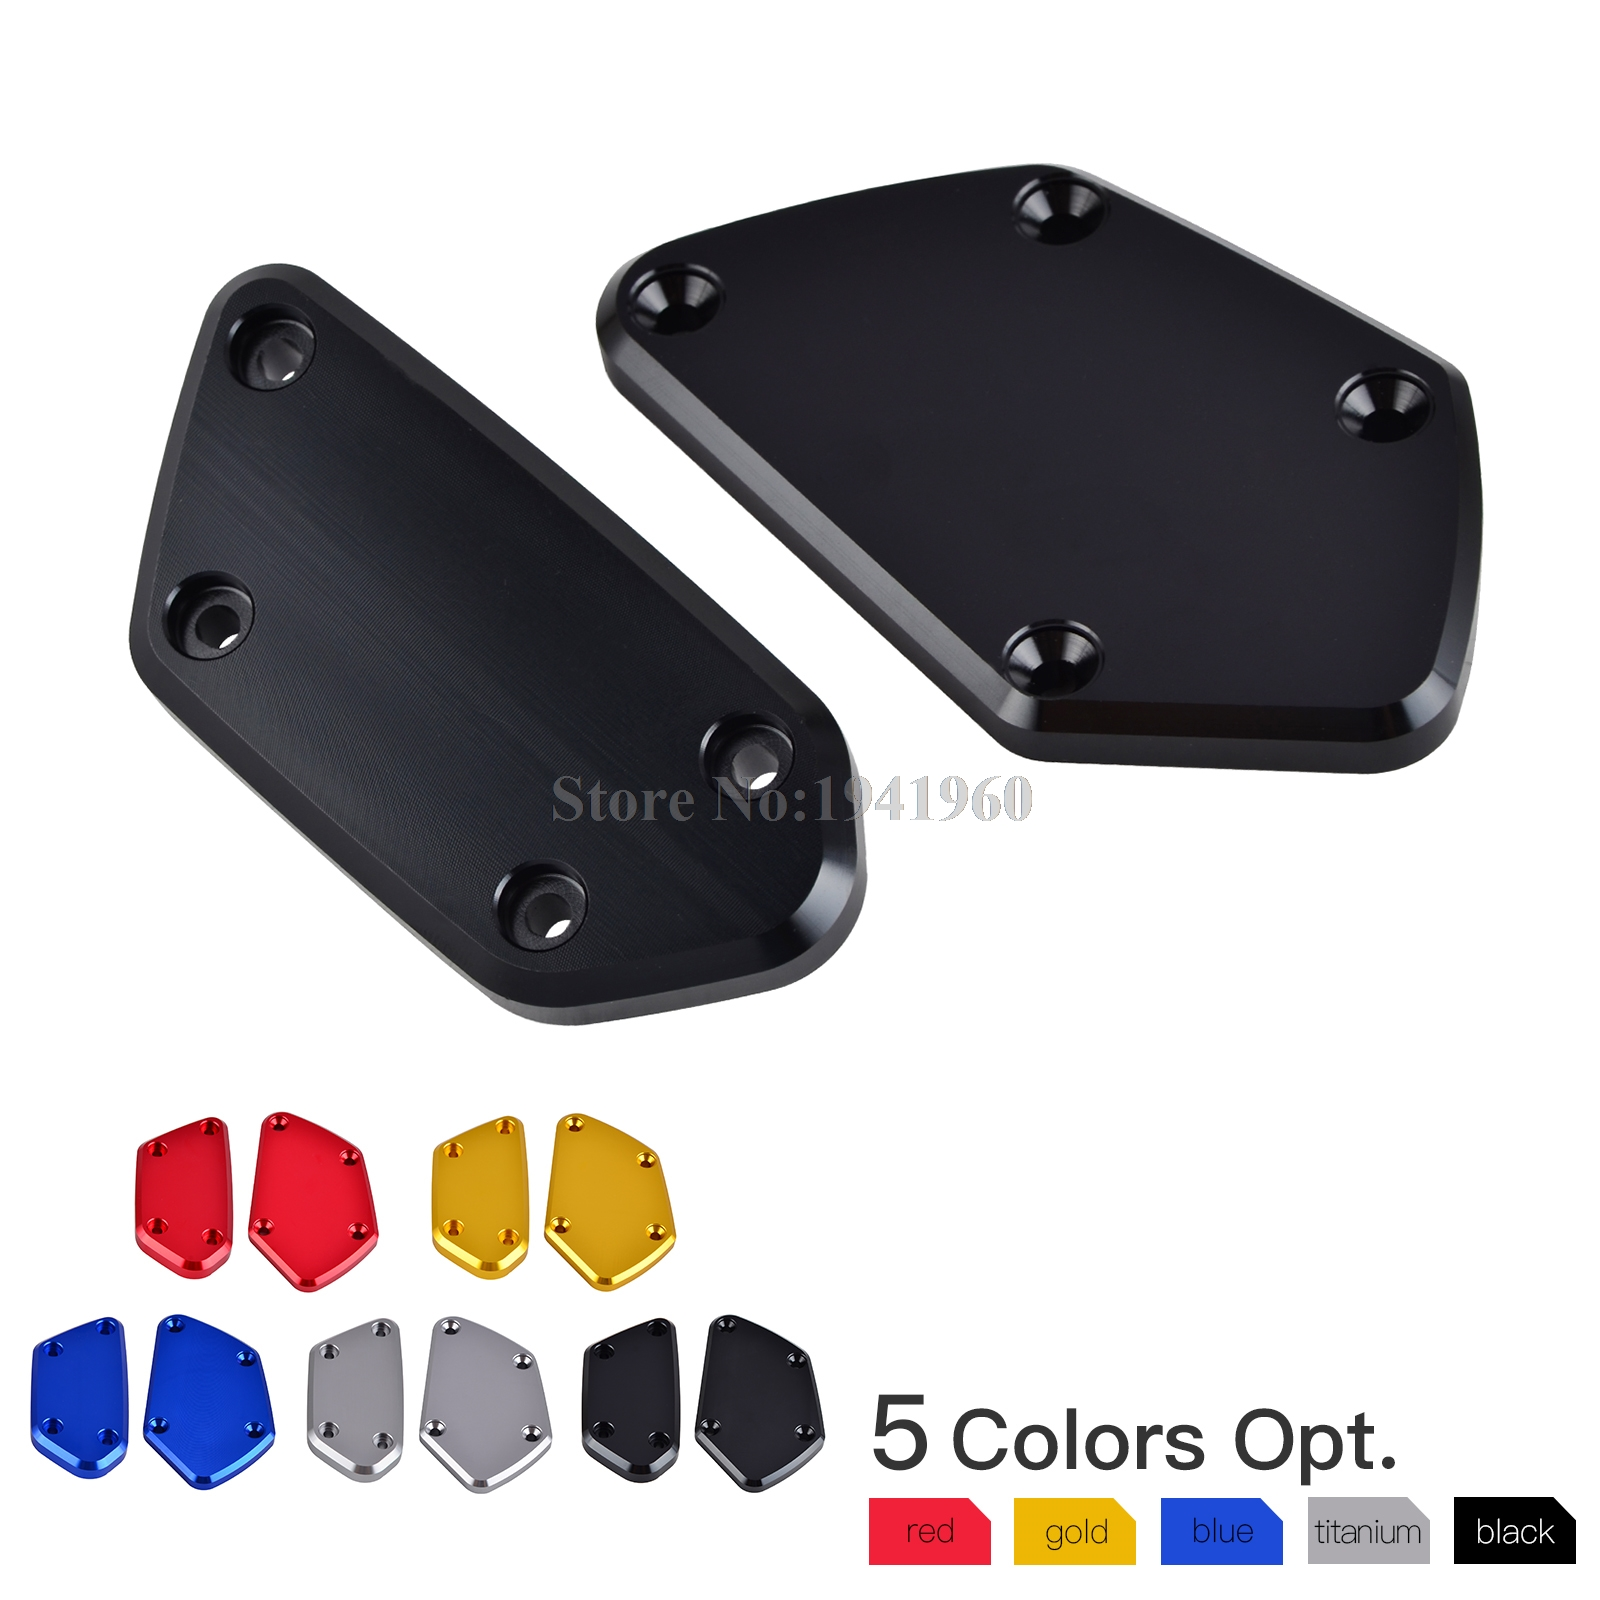 NICECNC Front Brake Clutch Fluid Reservoir Cap Tank Cover For BMW K1600GT R1200GS Adventure R1200R R1200RS R1200RT R Nine T 2017